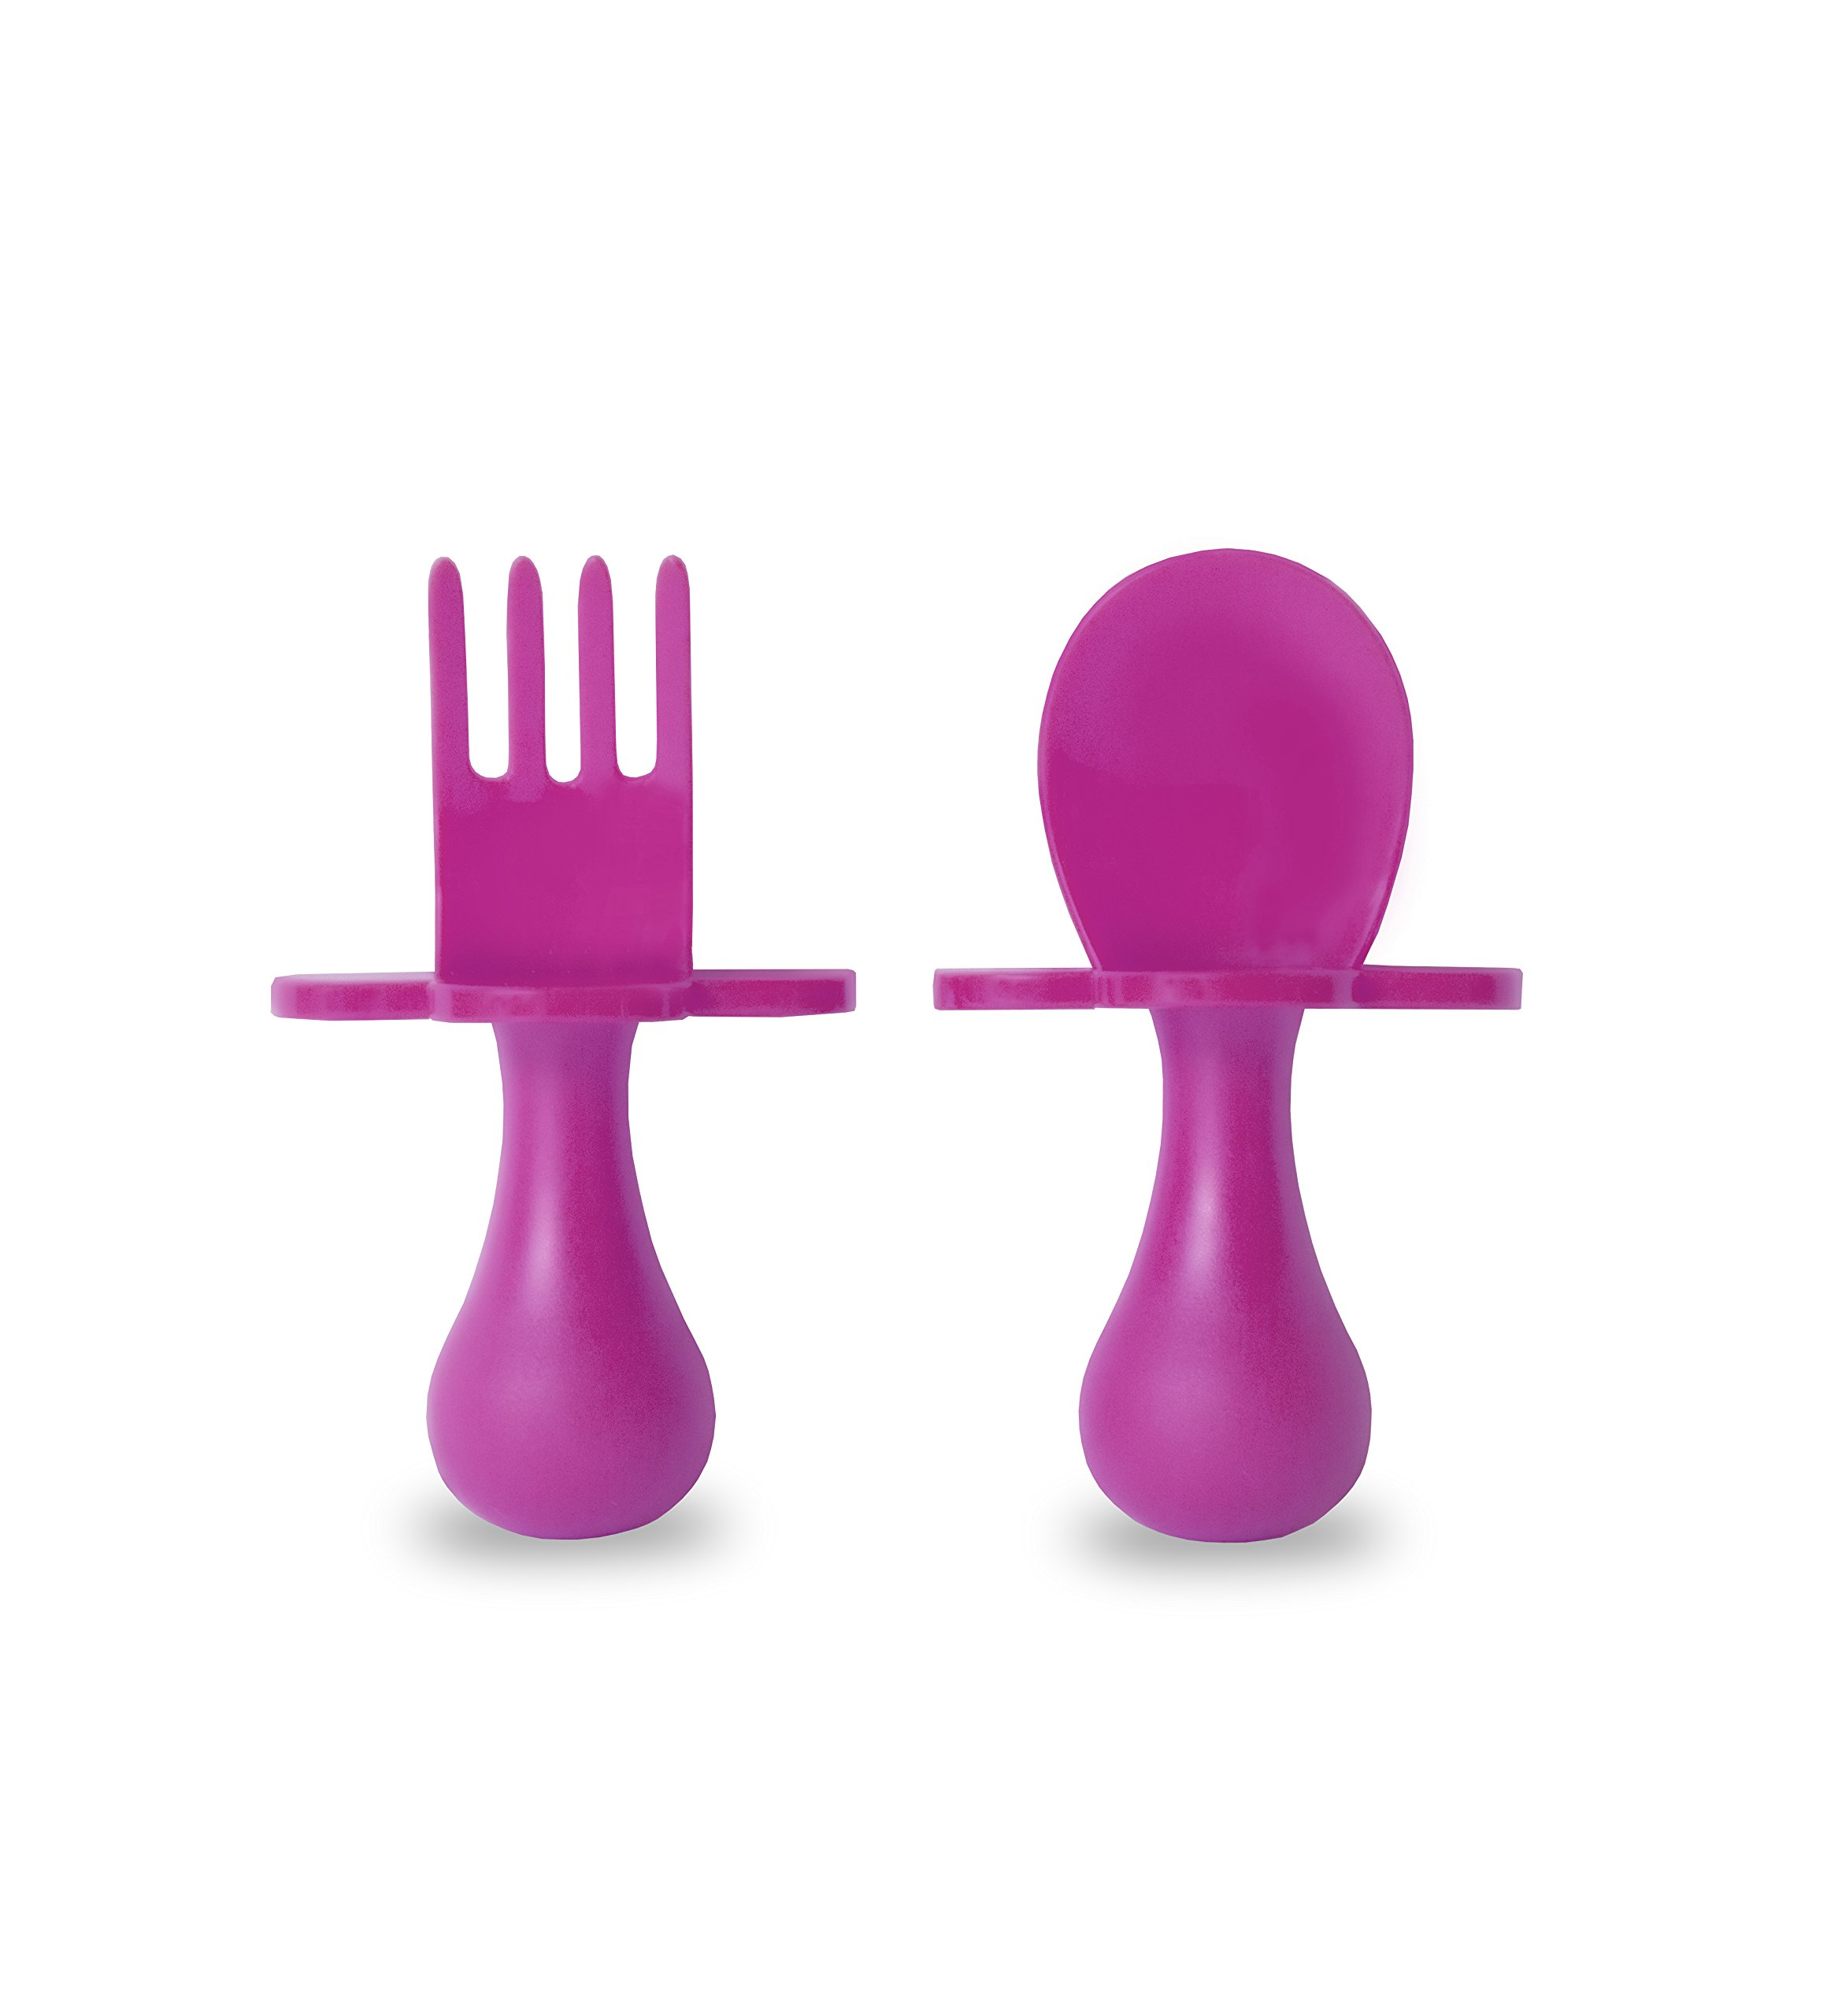 grabease (USA Made) First Self Feeding Utensil Set of Spoon and Fork for Toddler and Baby. BPA Free. to-go Pouch (Pink)